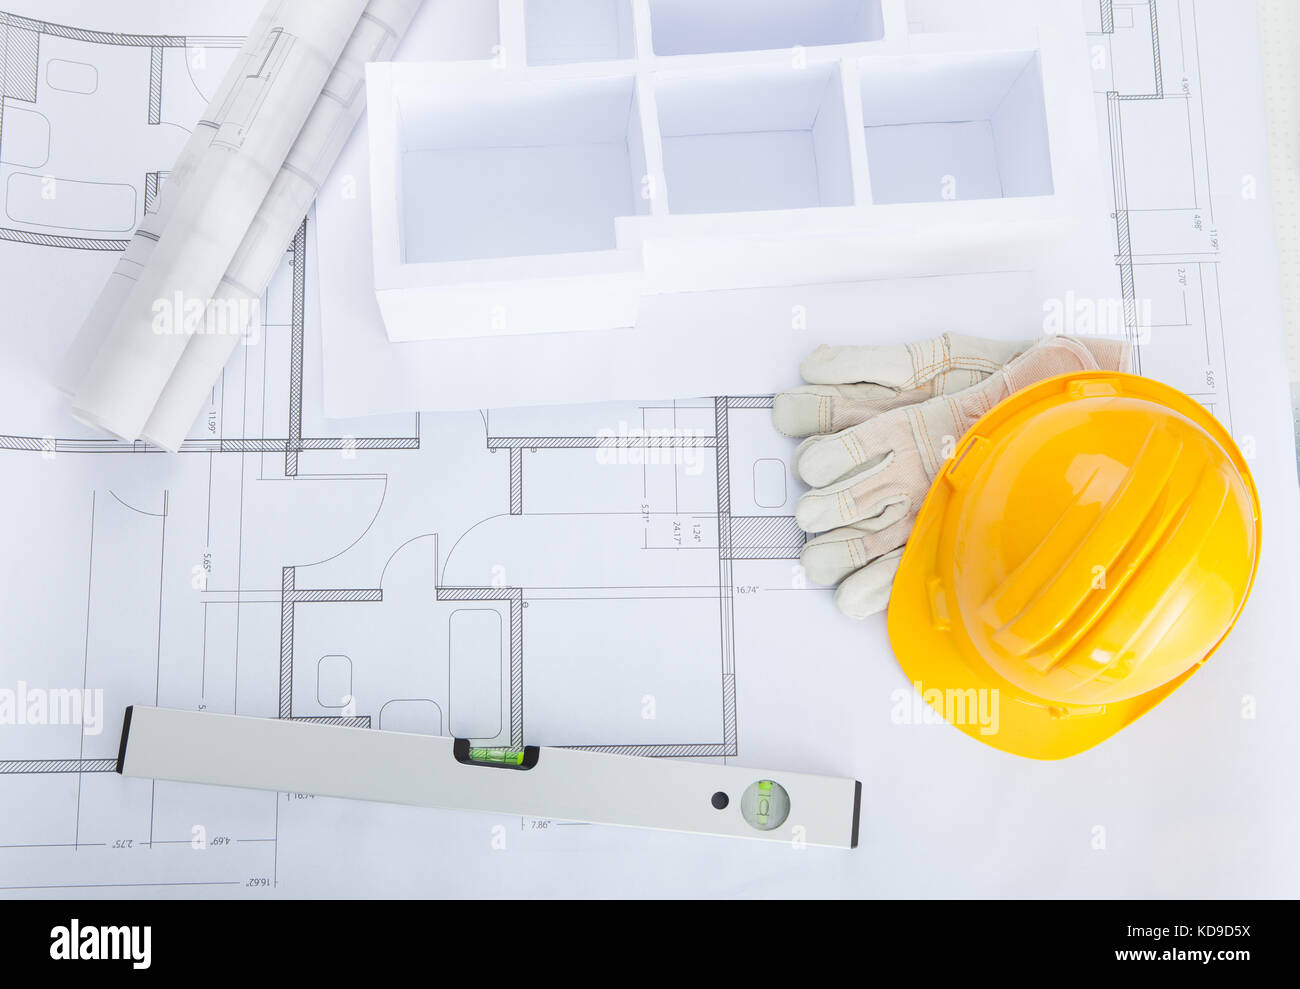 Model home diagram stock photos model home diagram stock images high angle view of house model on blueprint with hardhat stock image malvernweather Choice Image